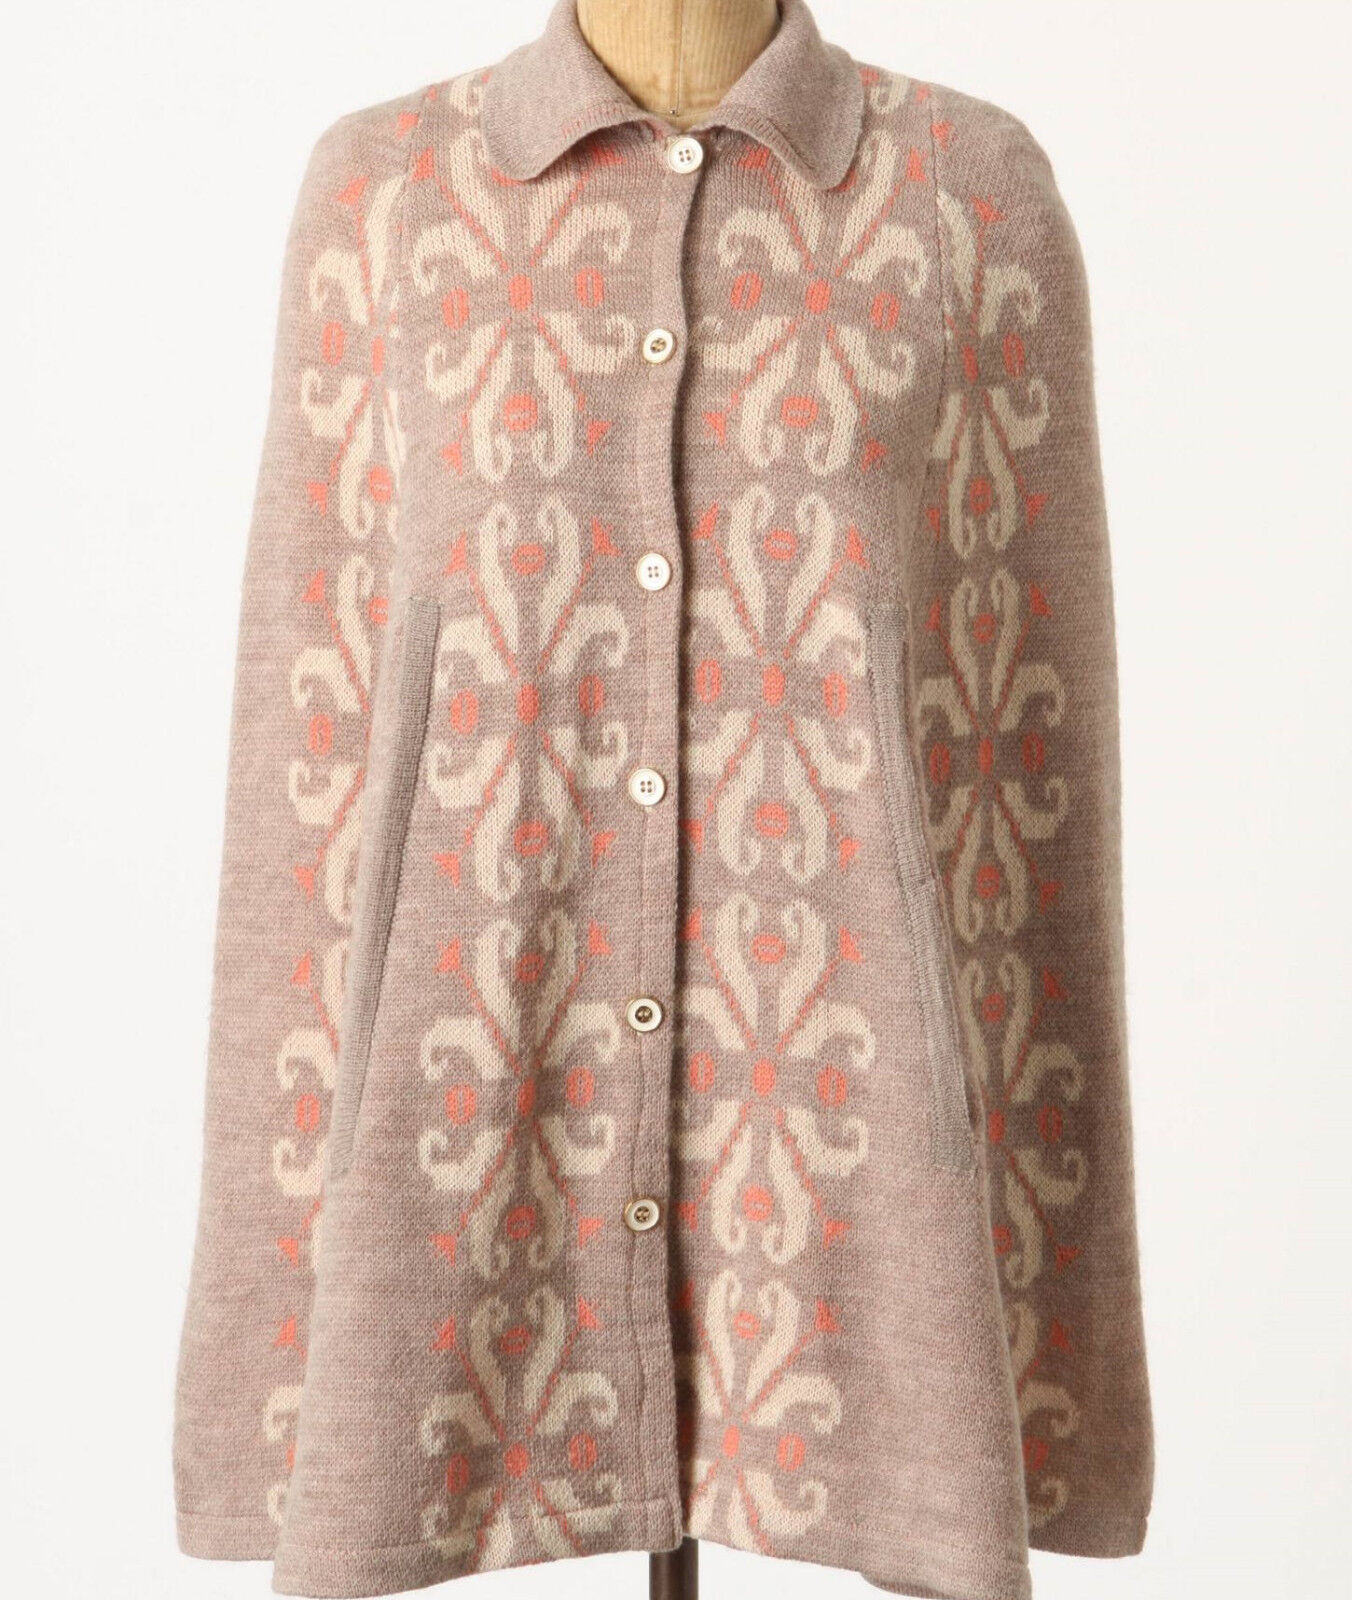 Madchen Flowering Pompona Cape Cardigan Size M, L Beige NW ANTHROPOLOGIE Tag